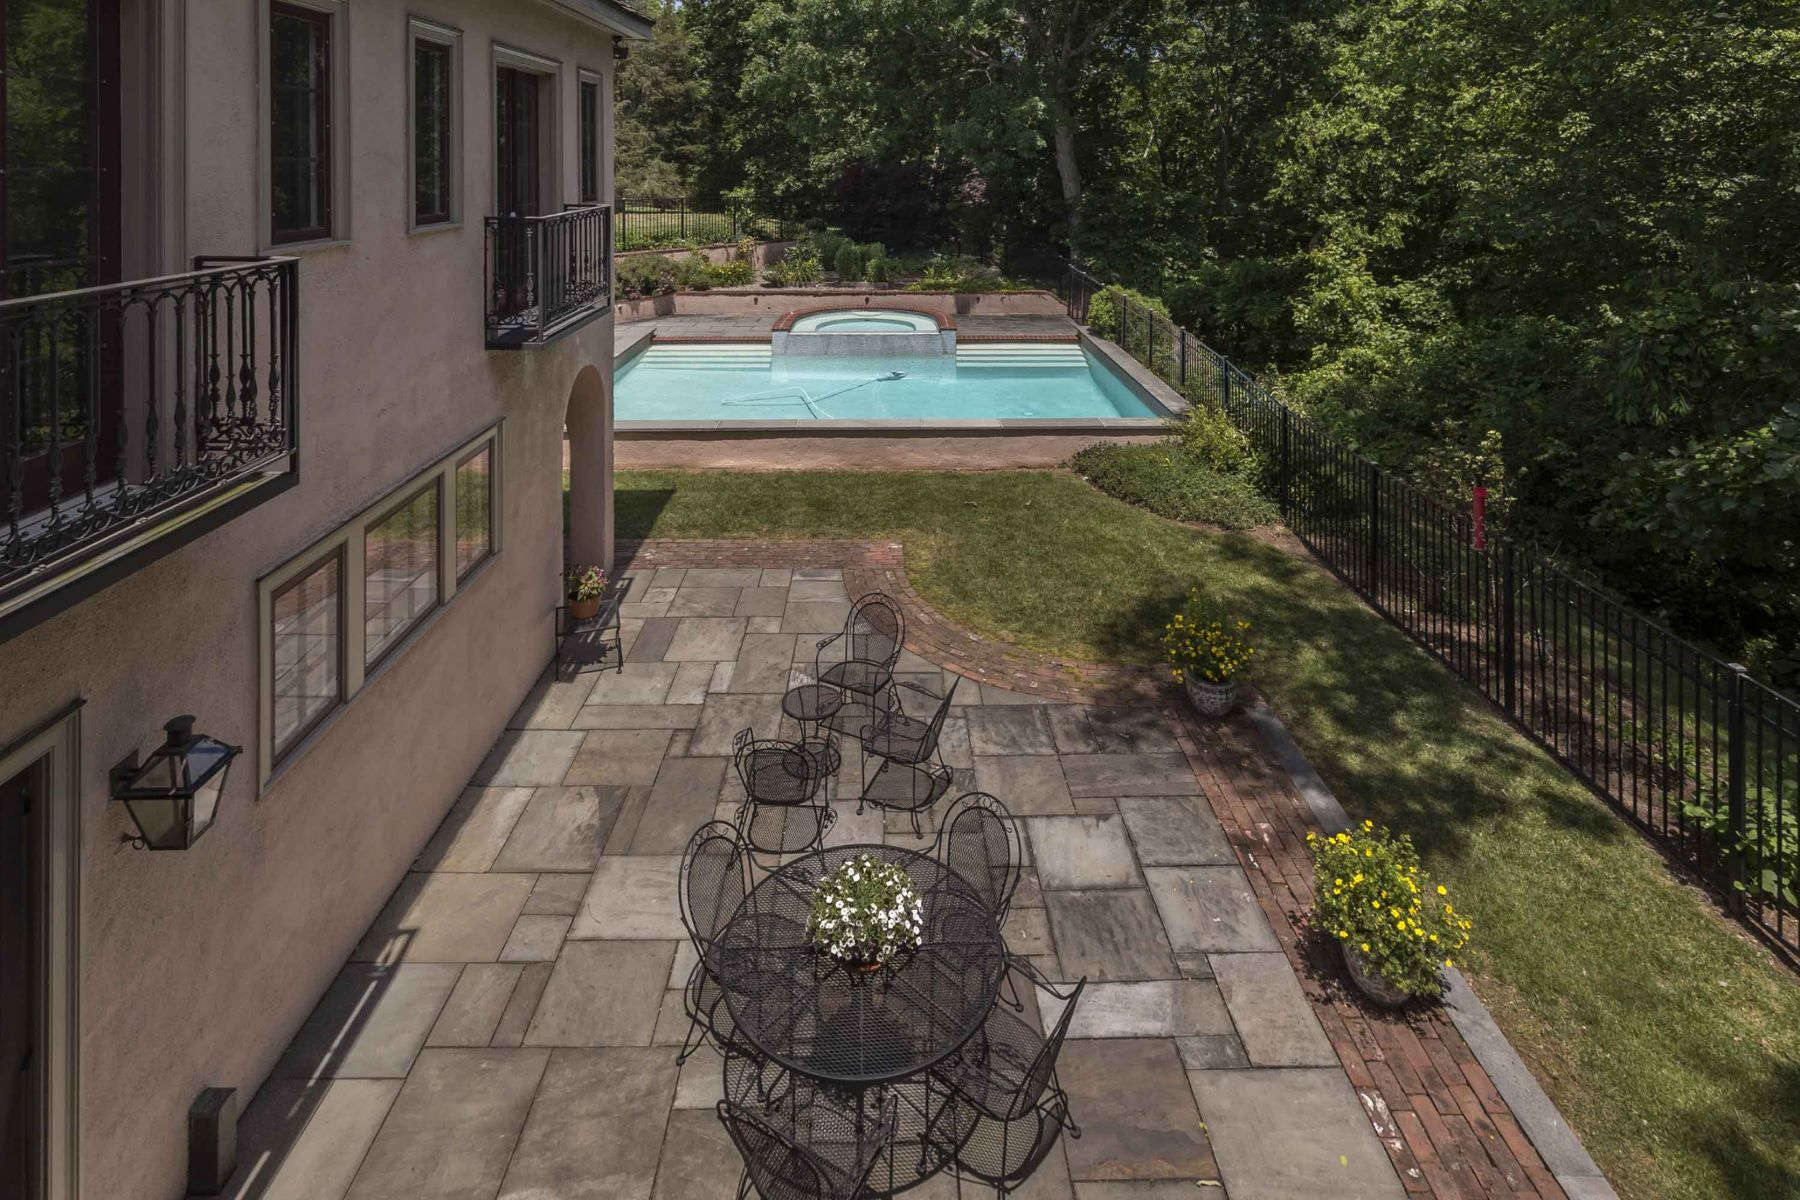 Additional photo for property listing at 2577 Township Rd  Quakertown, Pennsylvania 18951 United States